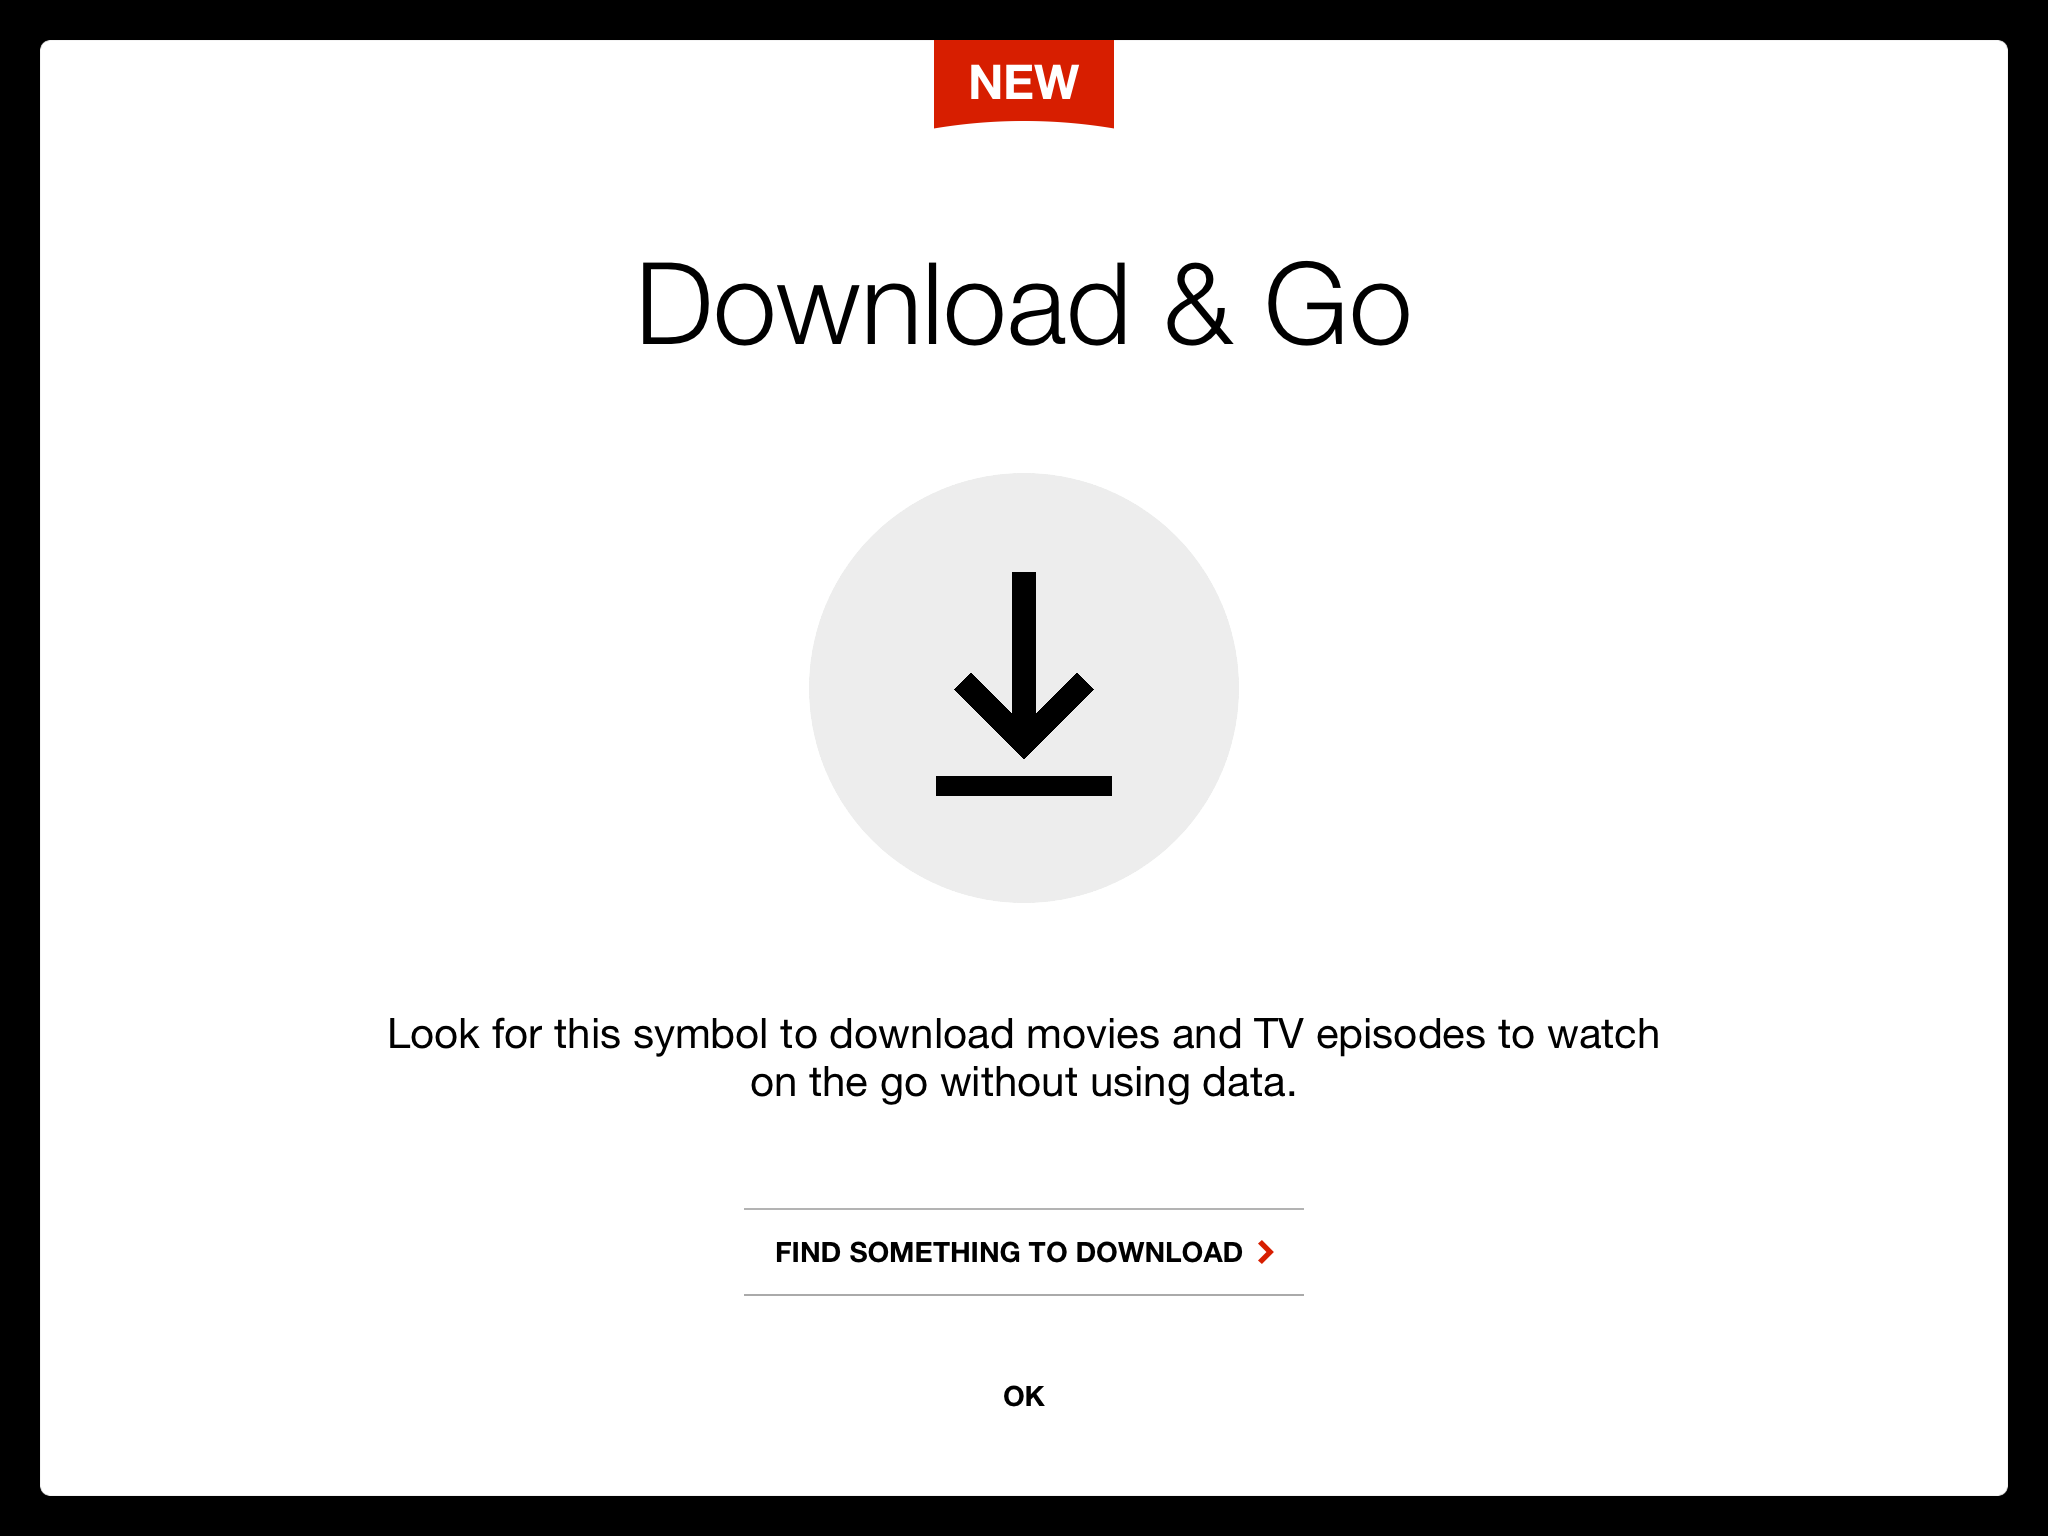 Netflix Introduces Offline Viewing for iOS - TidBITS